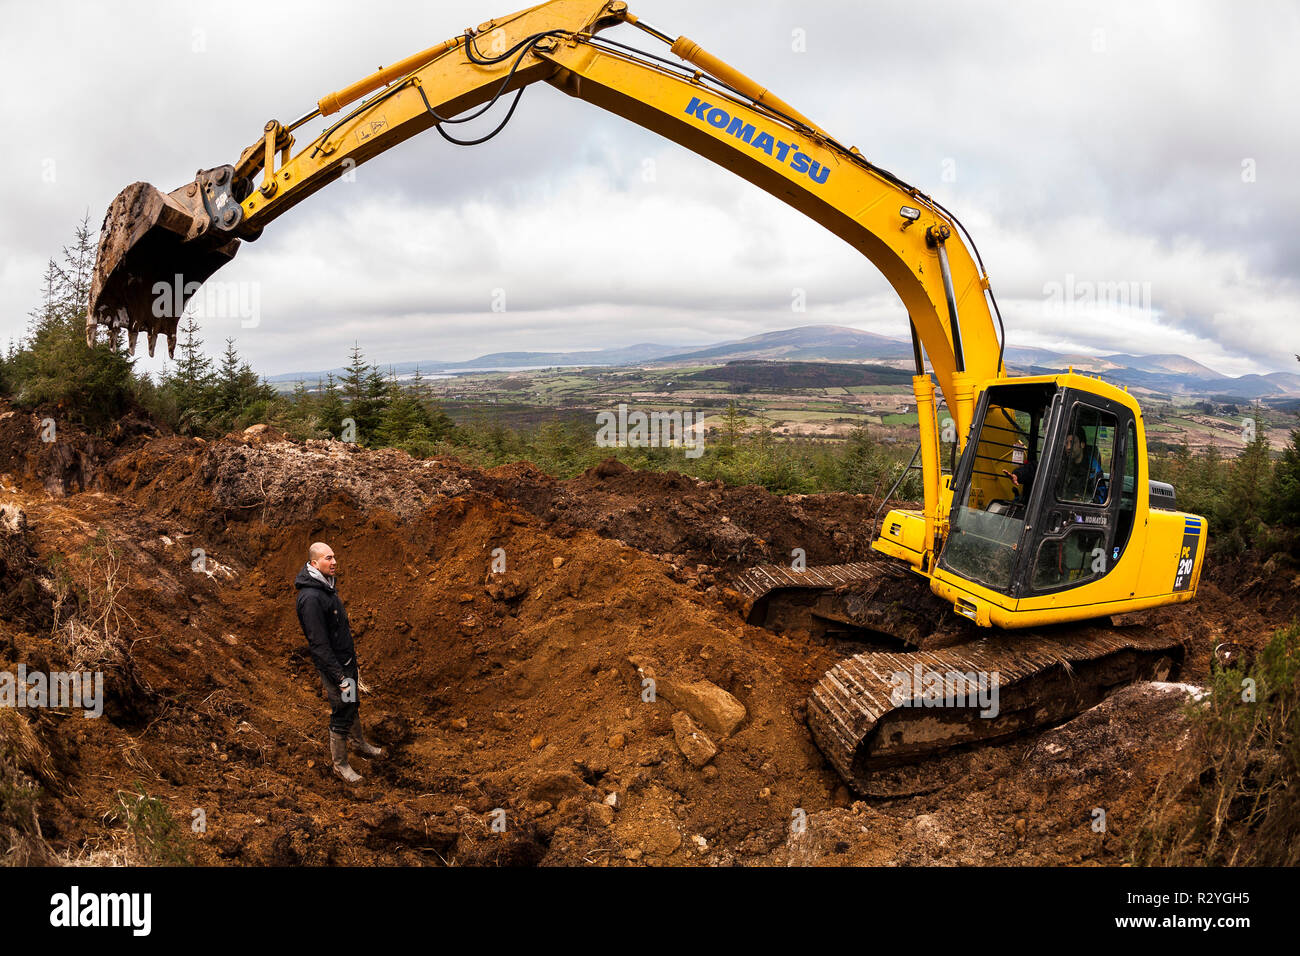 Komatsu excavator at work in a forest - Stock Image